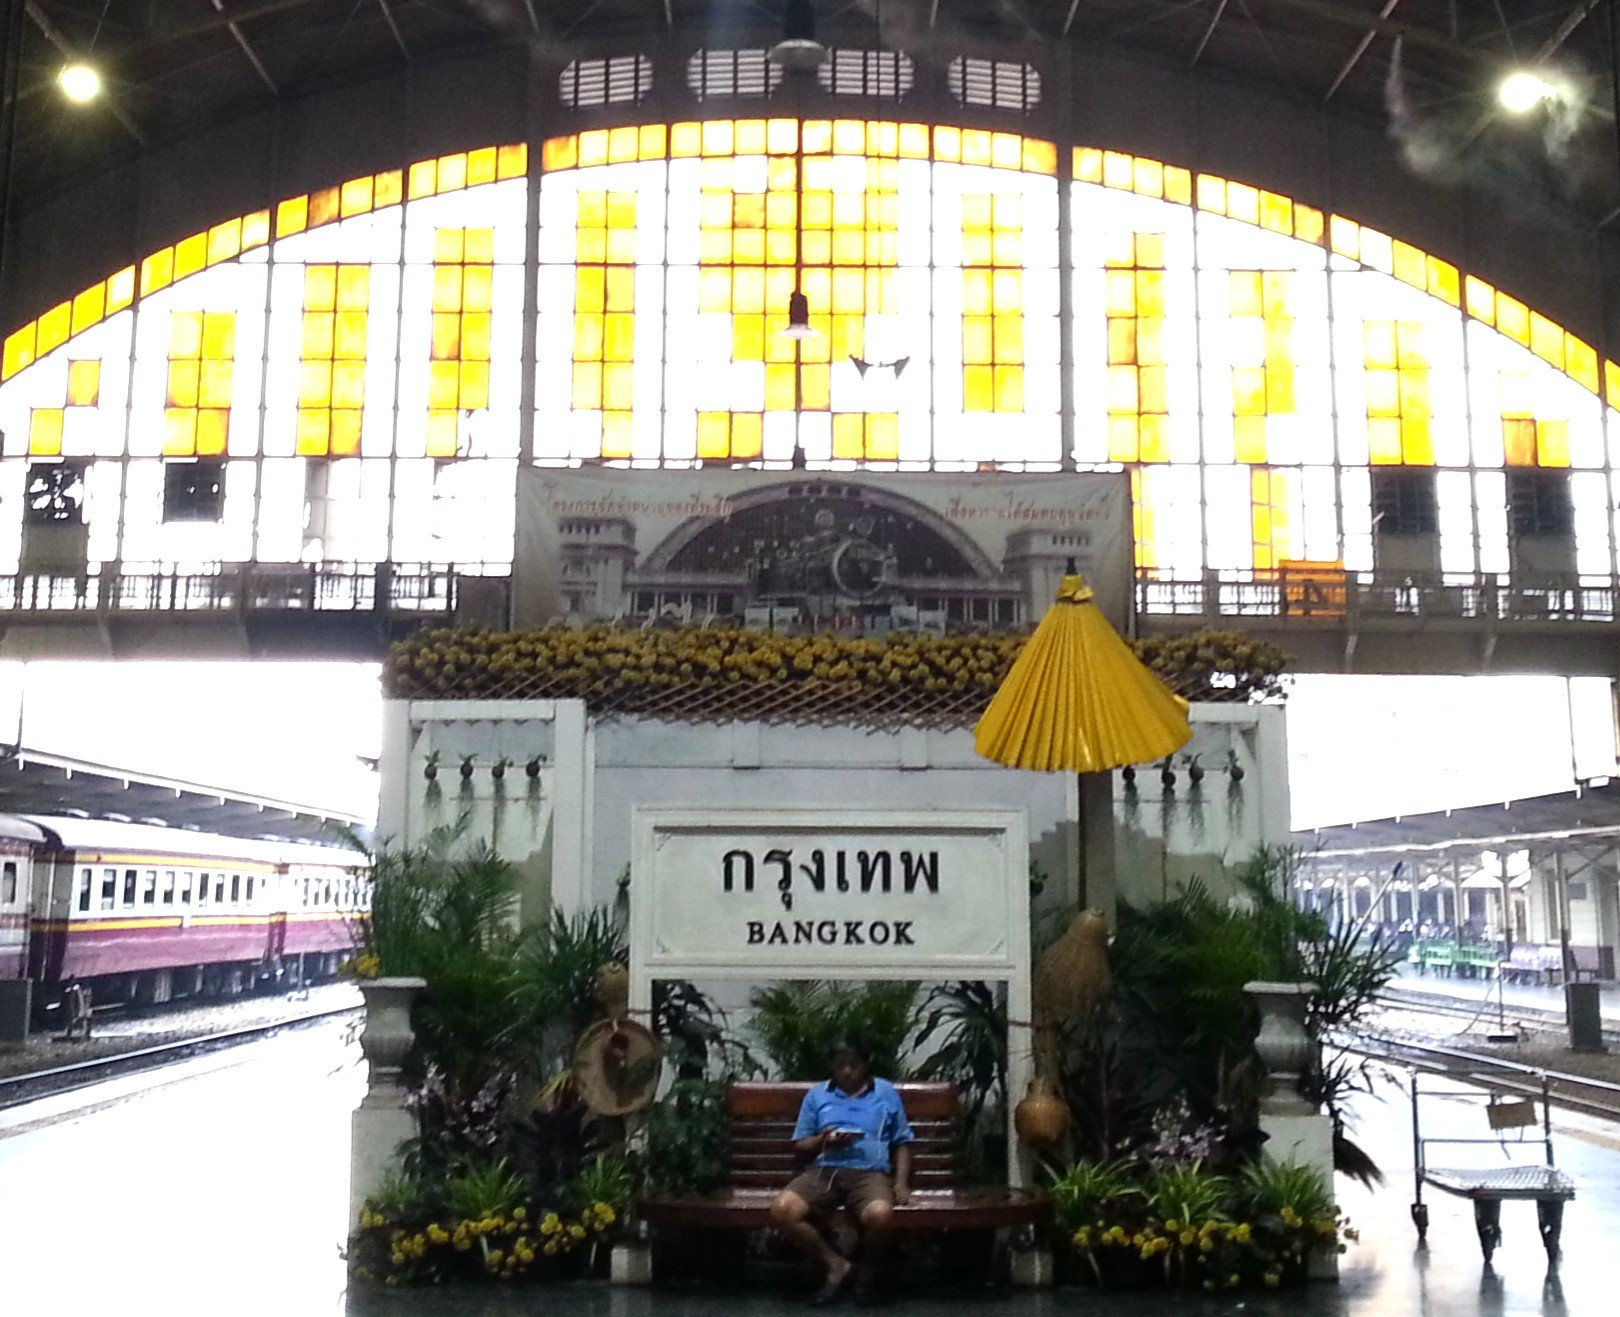 Hua Lamphong Railway Station in Bangkok